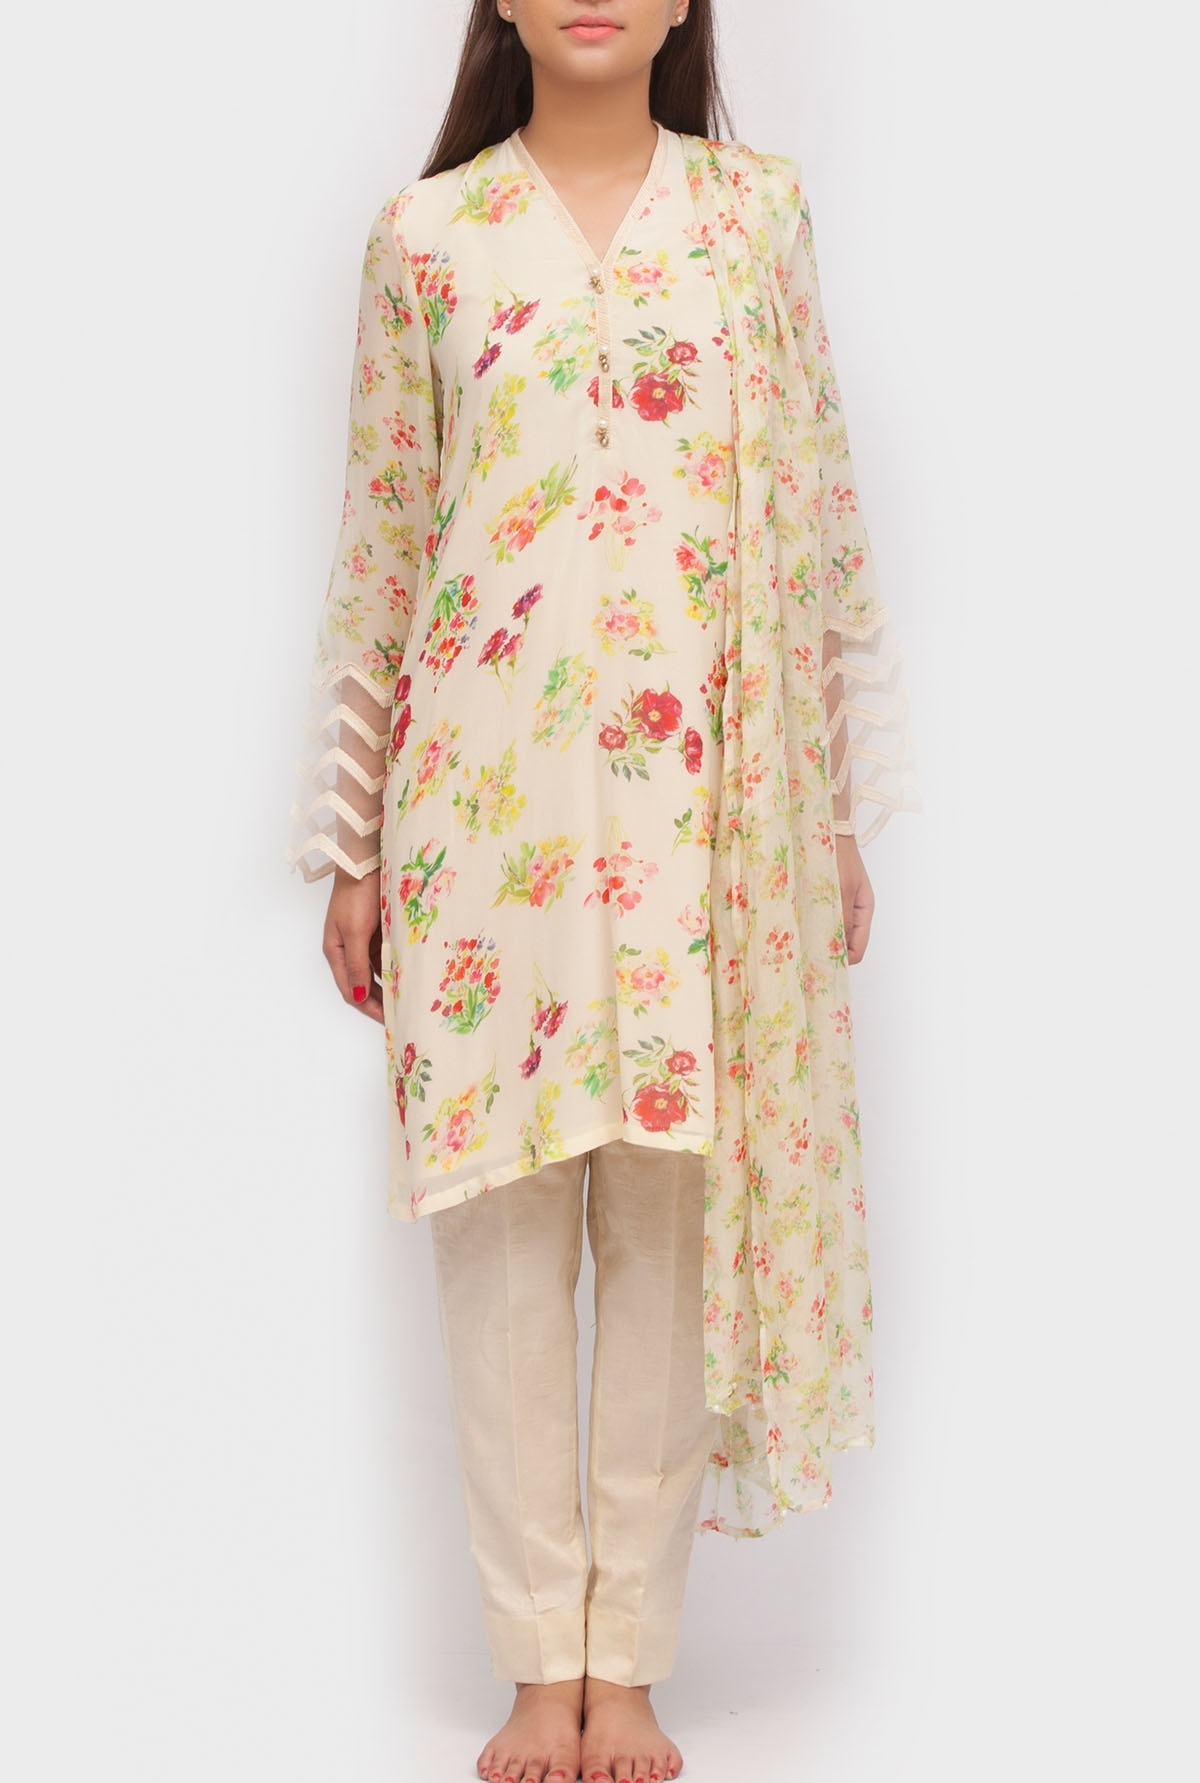 three piece digital printed chiffon suit by Generation